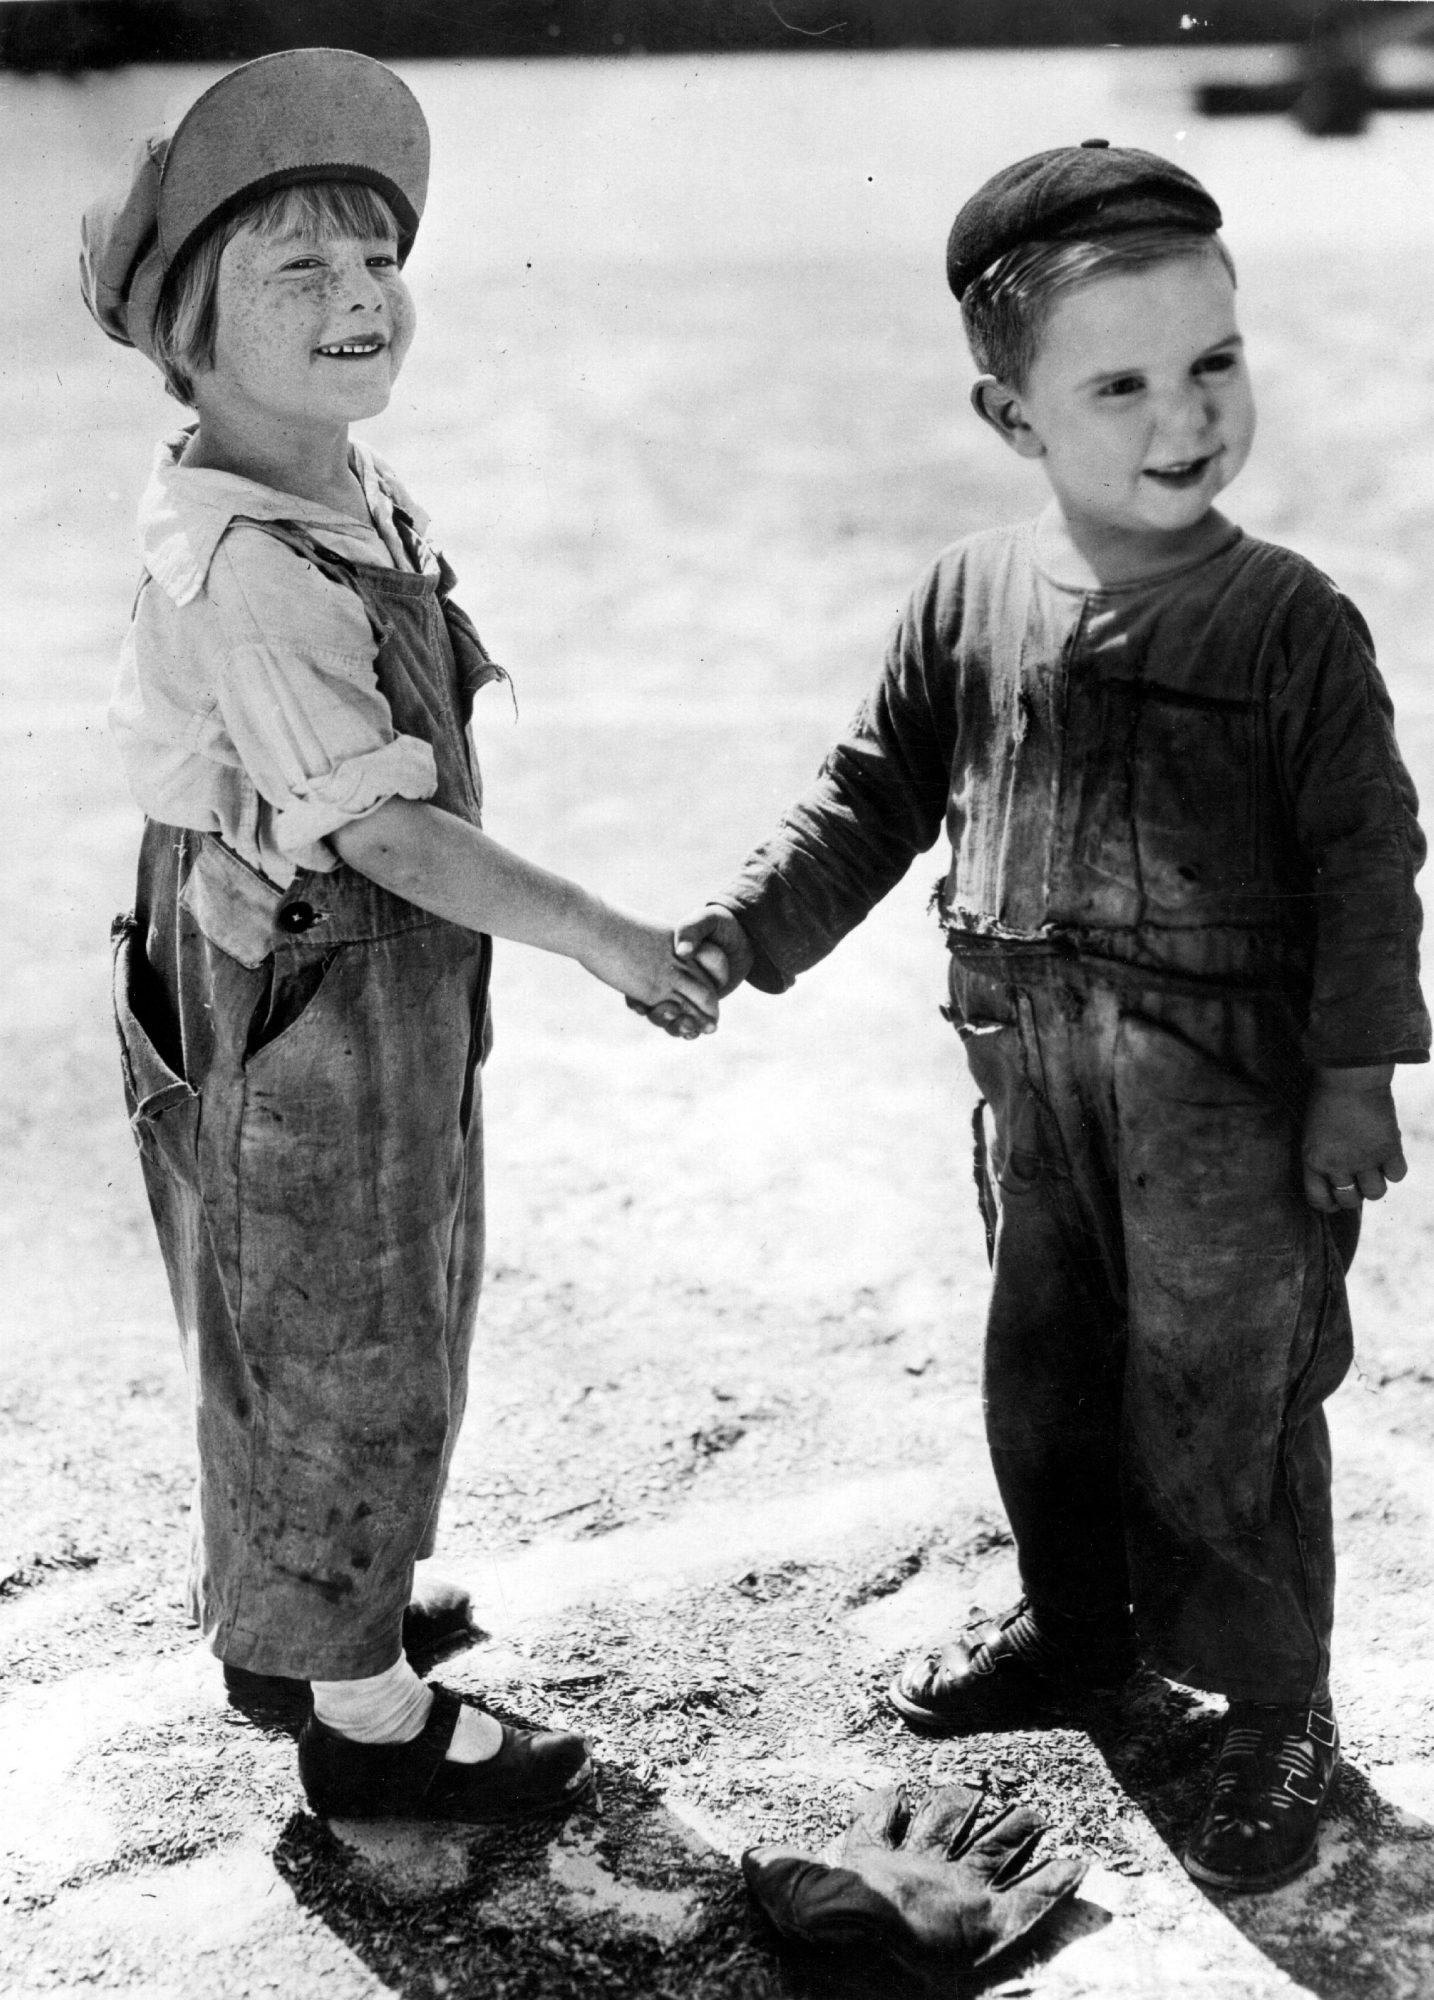 Young Boys Shaking Hands